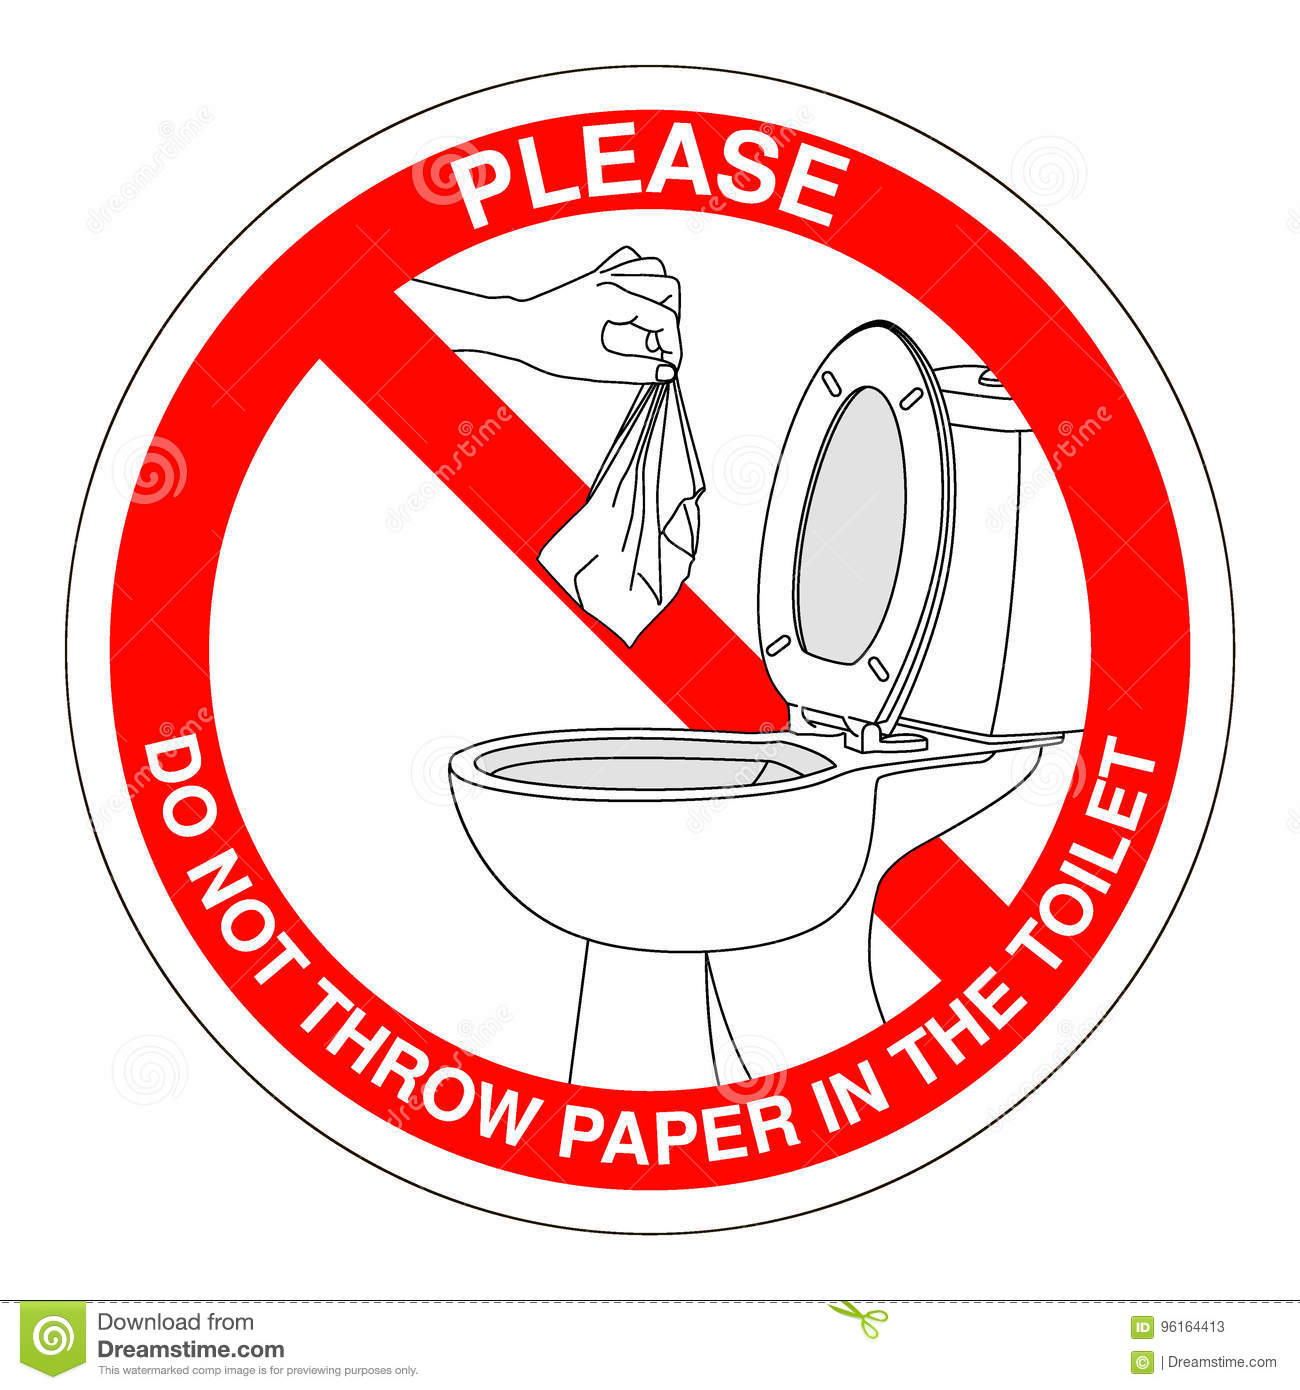 Do Not Throw Trash In Toilet Sign